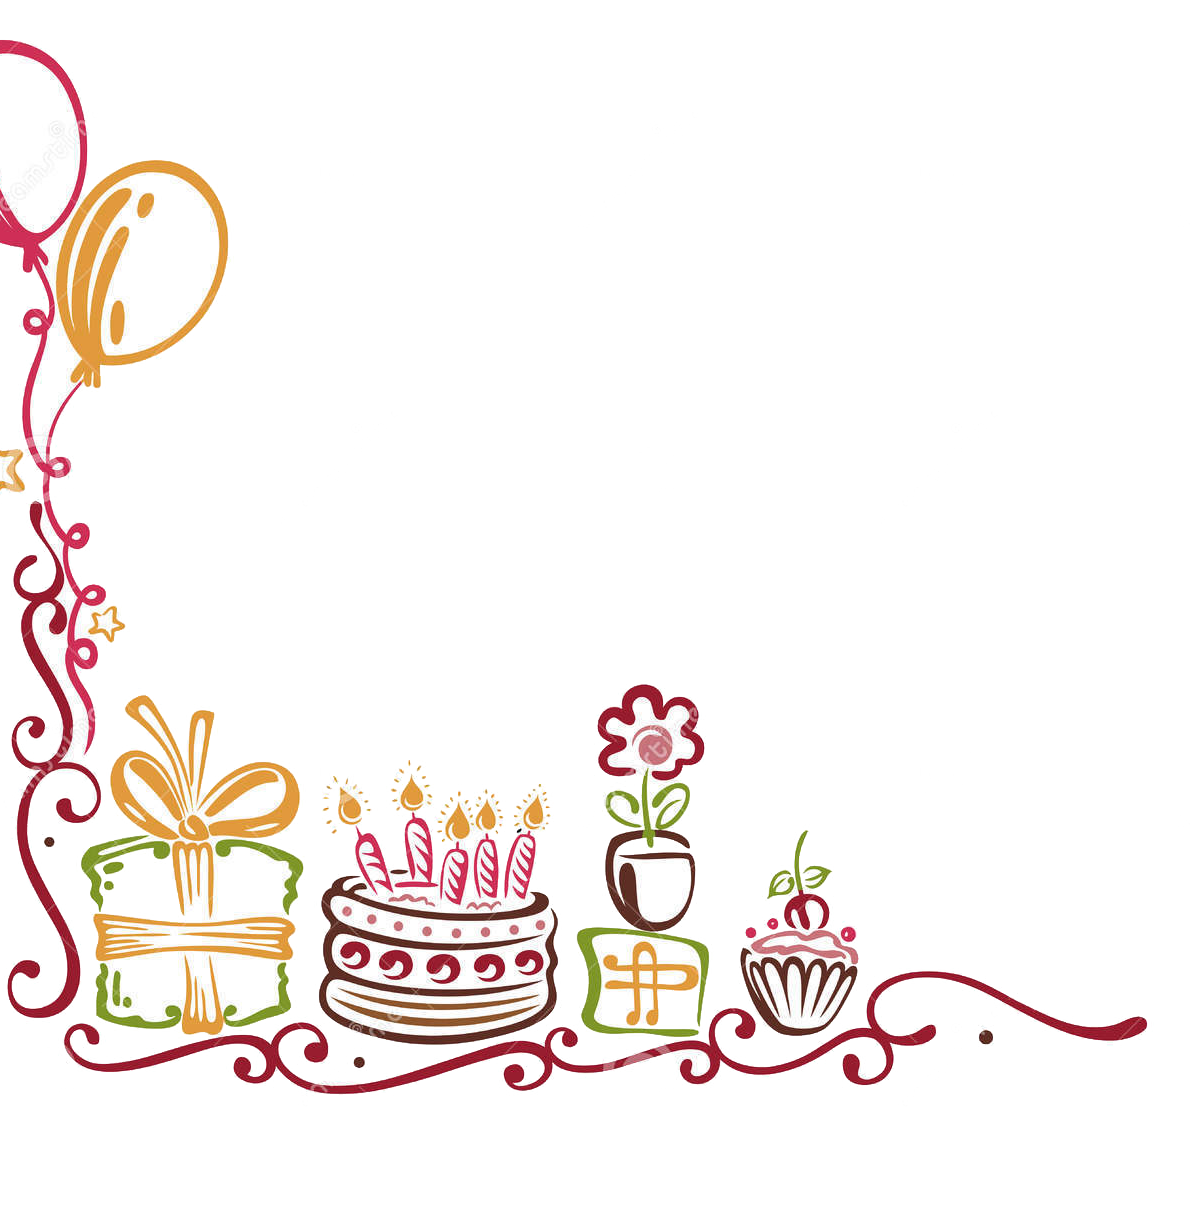 Birthday border png. Google search clipart pinterest